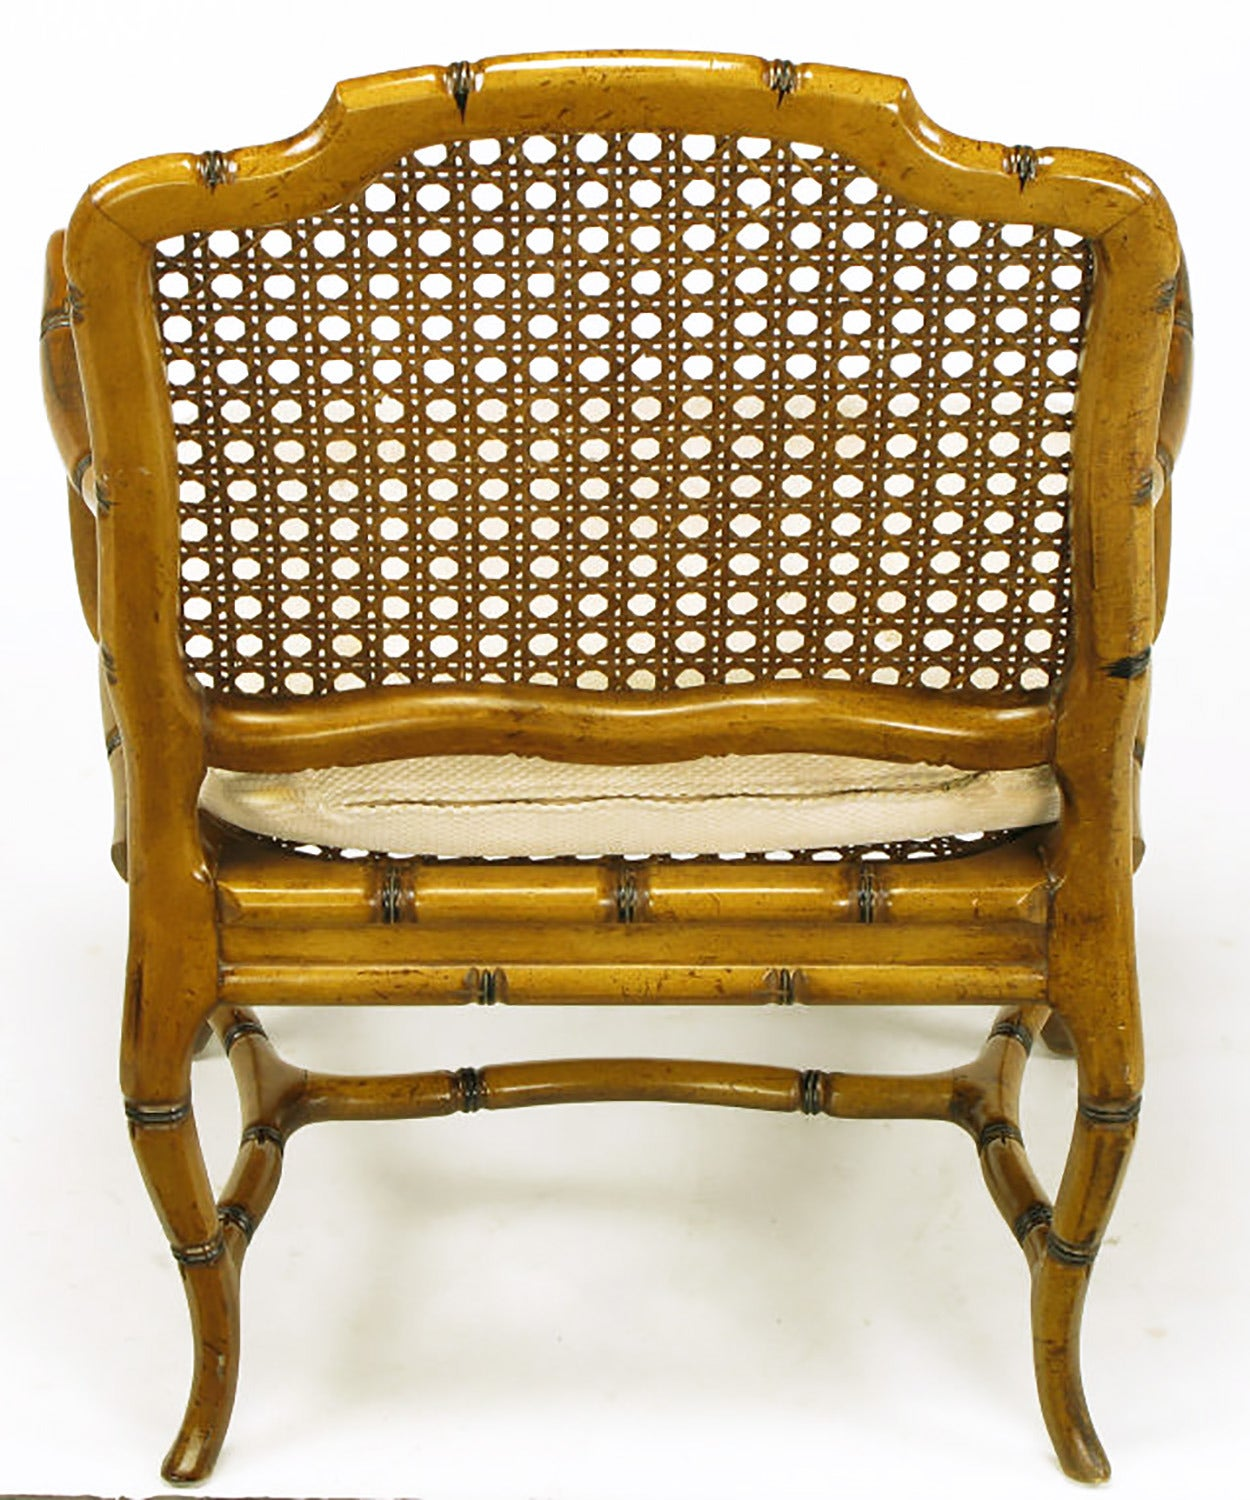 bamboo cane back chairs spindle chair legs form cabriole leg armchair for sale at